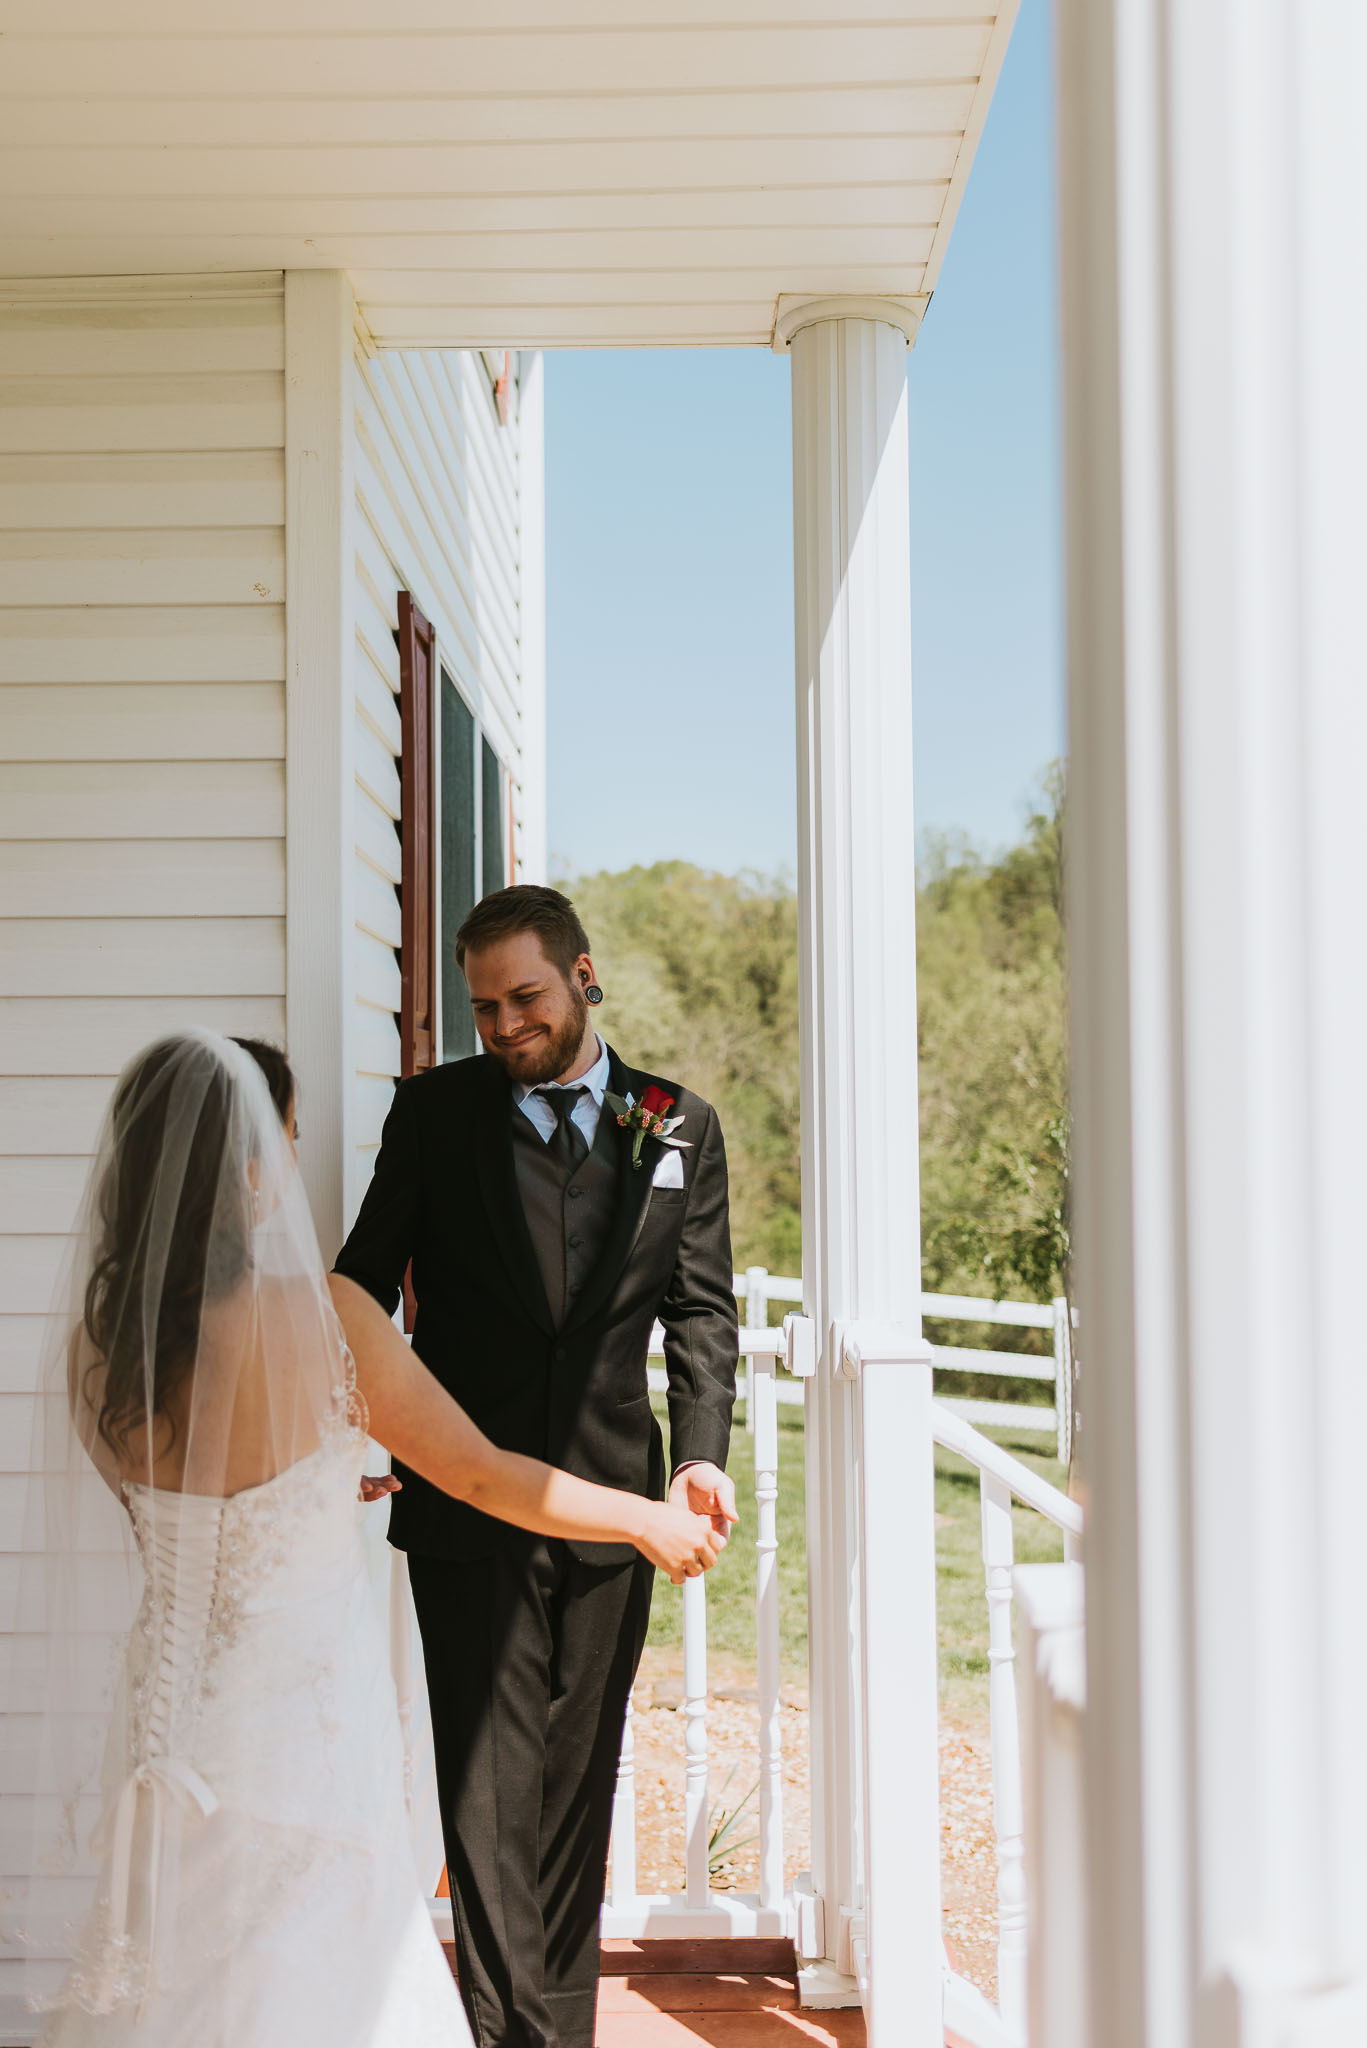 Broken J Farm Wedding In Bristol, Tennessee, Northeast Tennessee Wedding Photographer, East Tennessee Wedding Photographer, Knoxville, Tennessee Wedding Photographer